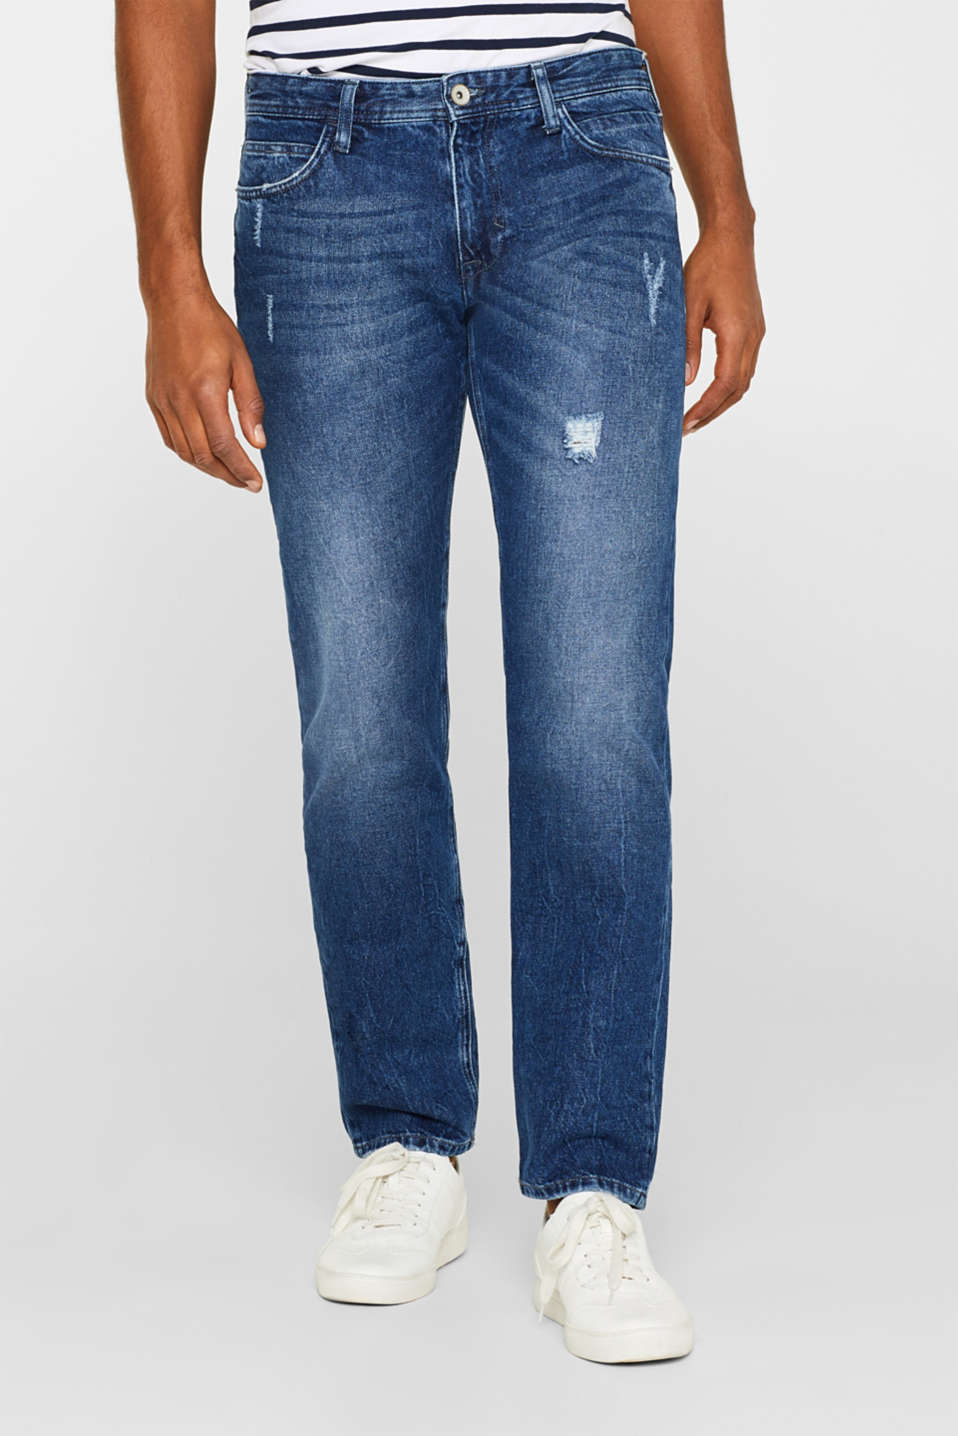 Esprit - Non-stretch jeans in 100% cotton